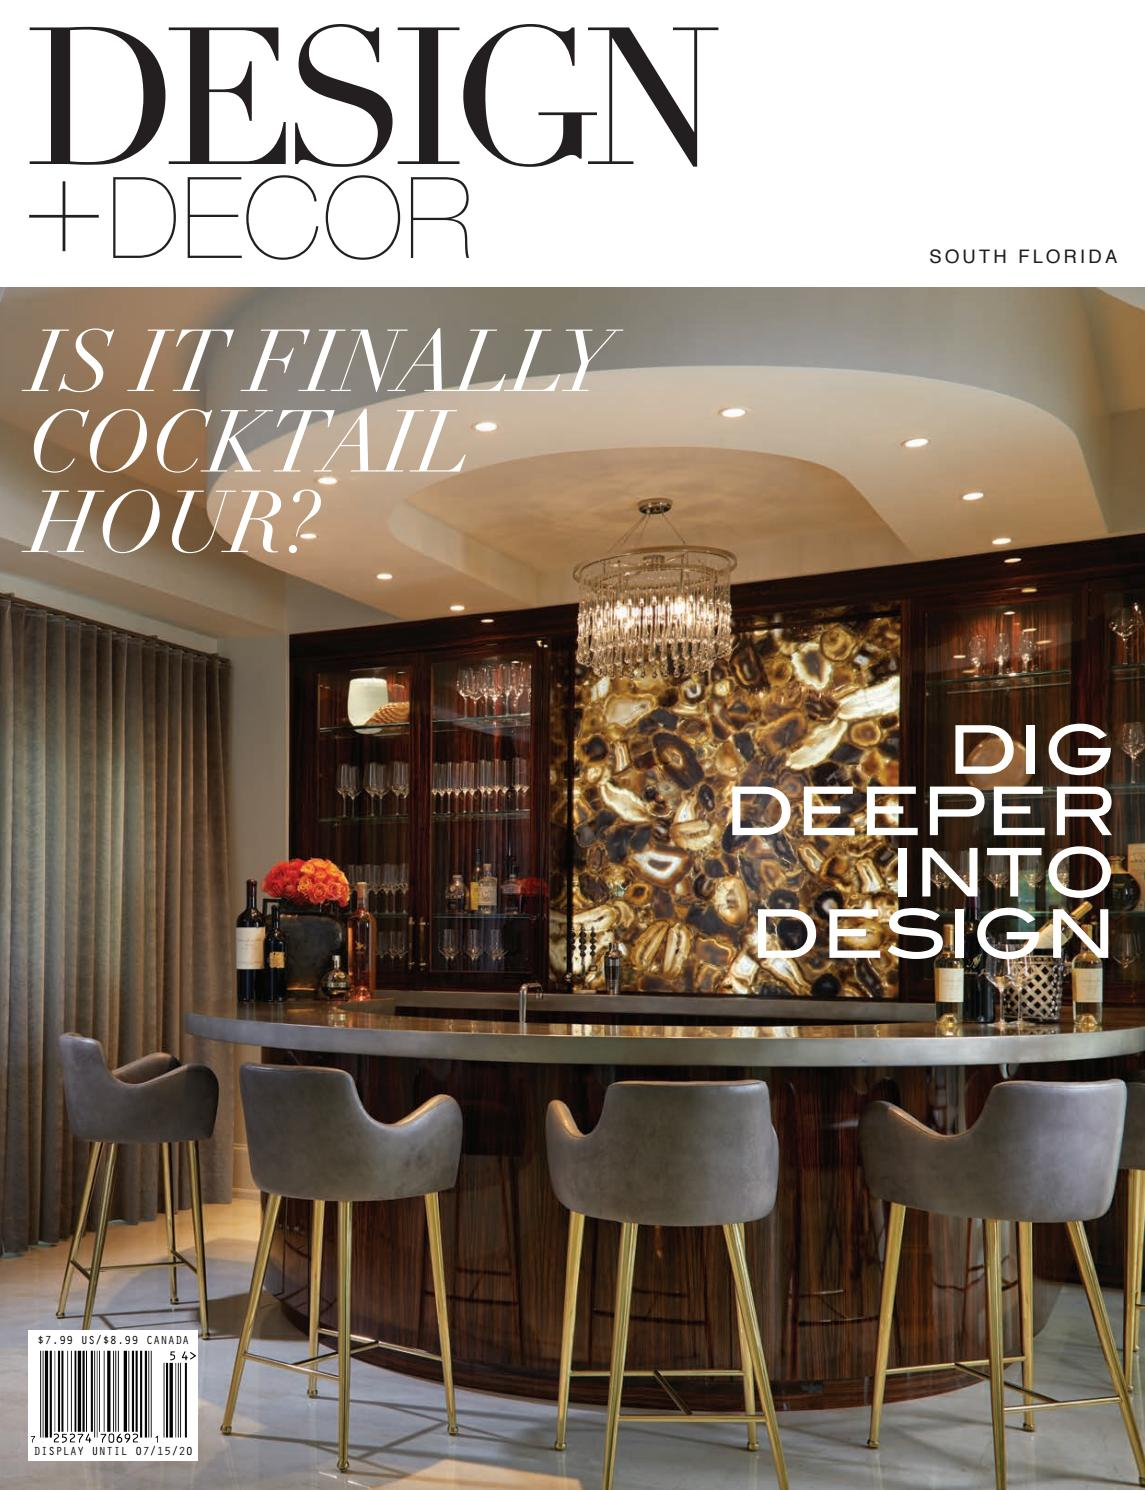 Design Decor South Florida Spring 2020 By East Coast Home Publishing Issuu